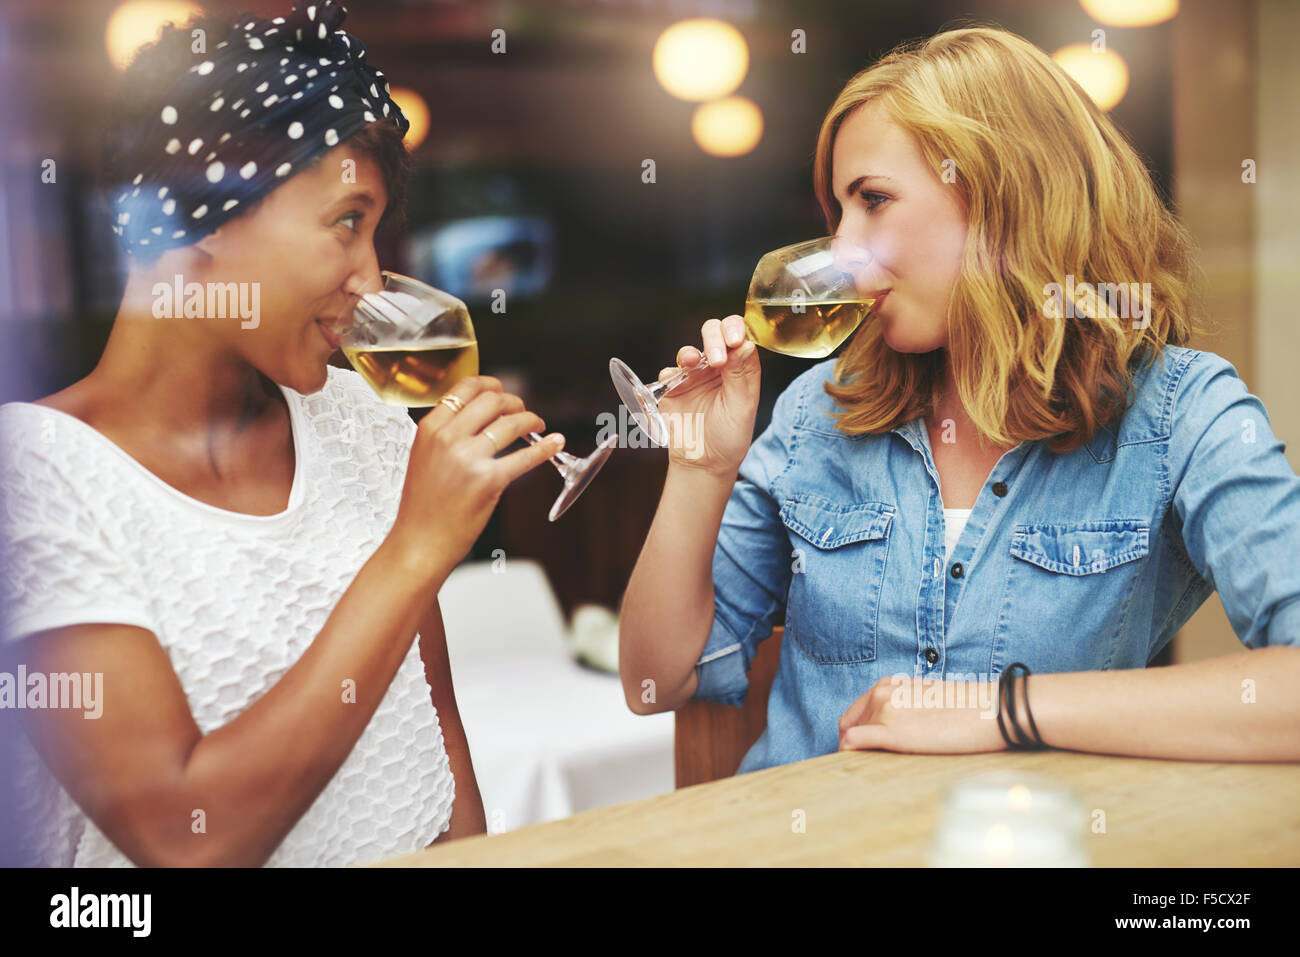 Two attractive young women meeting up in a pub for a glass of white wine sitting at a counter smiling at each other - Stock Image